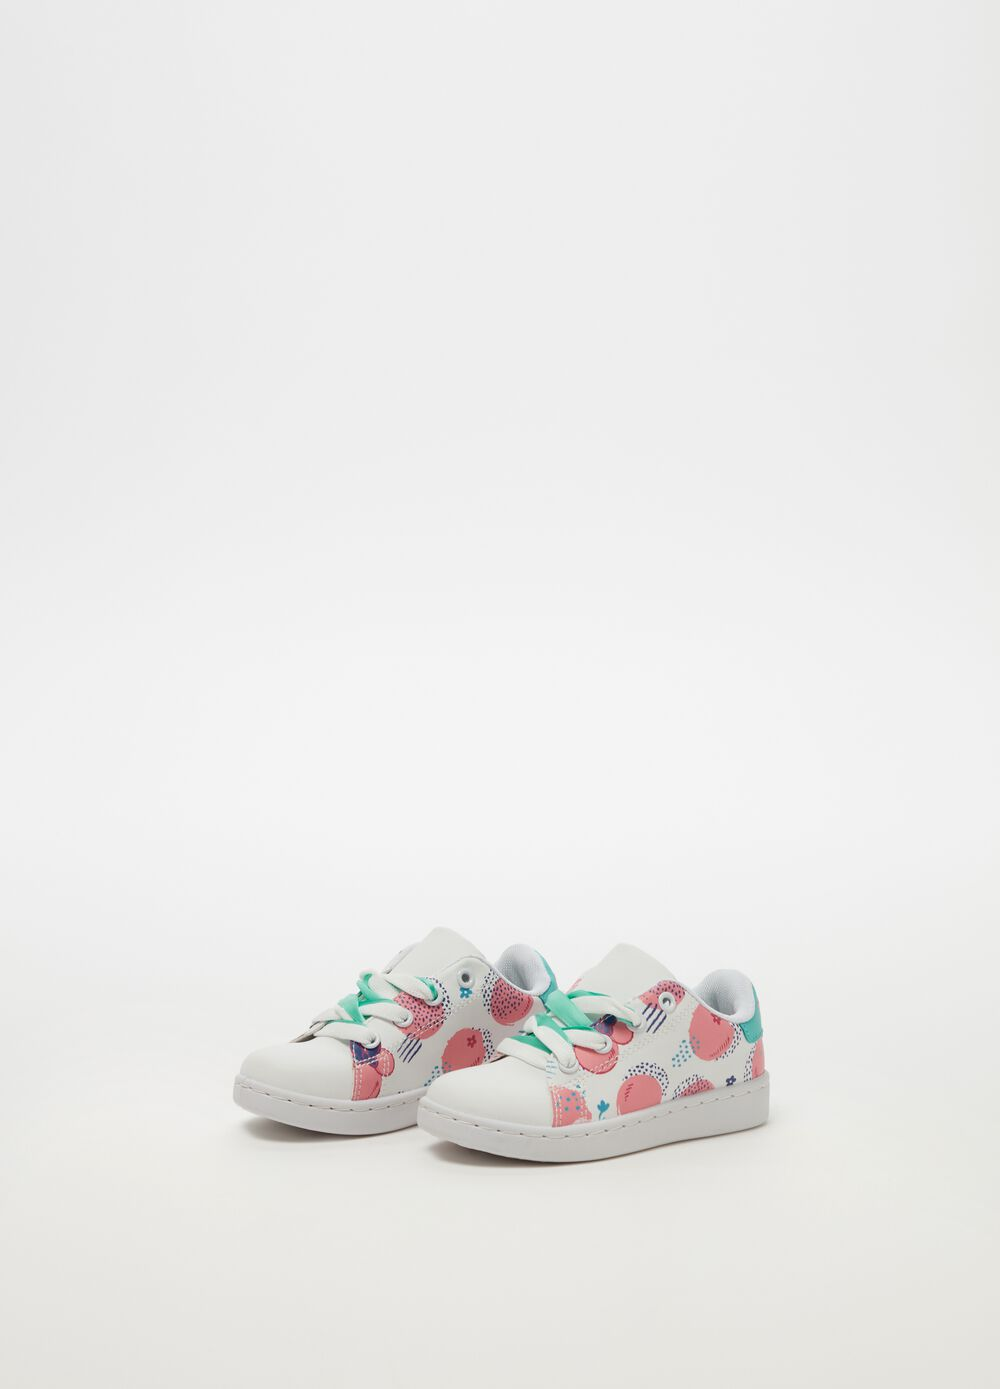 Minnie Mouse sneakers with pattern and laces